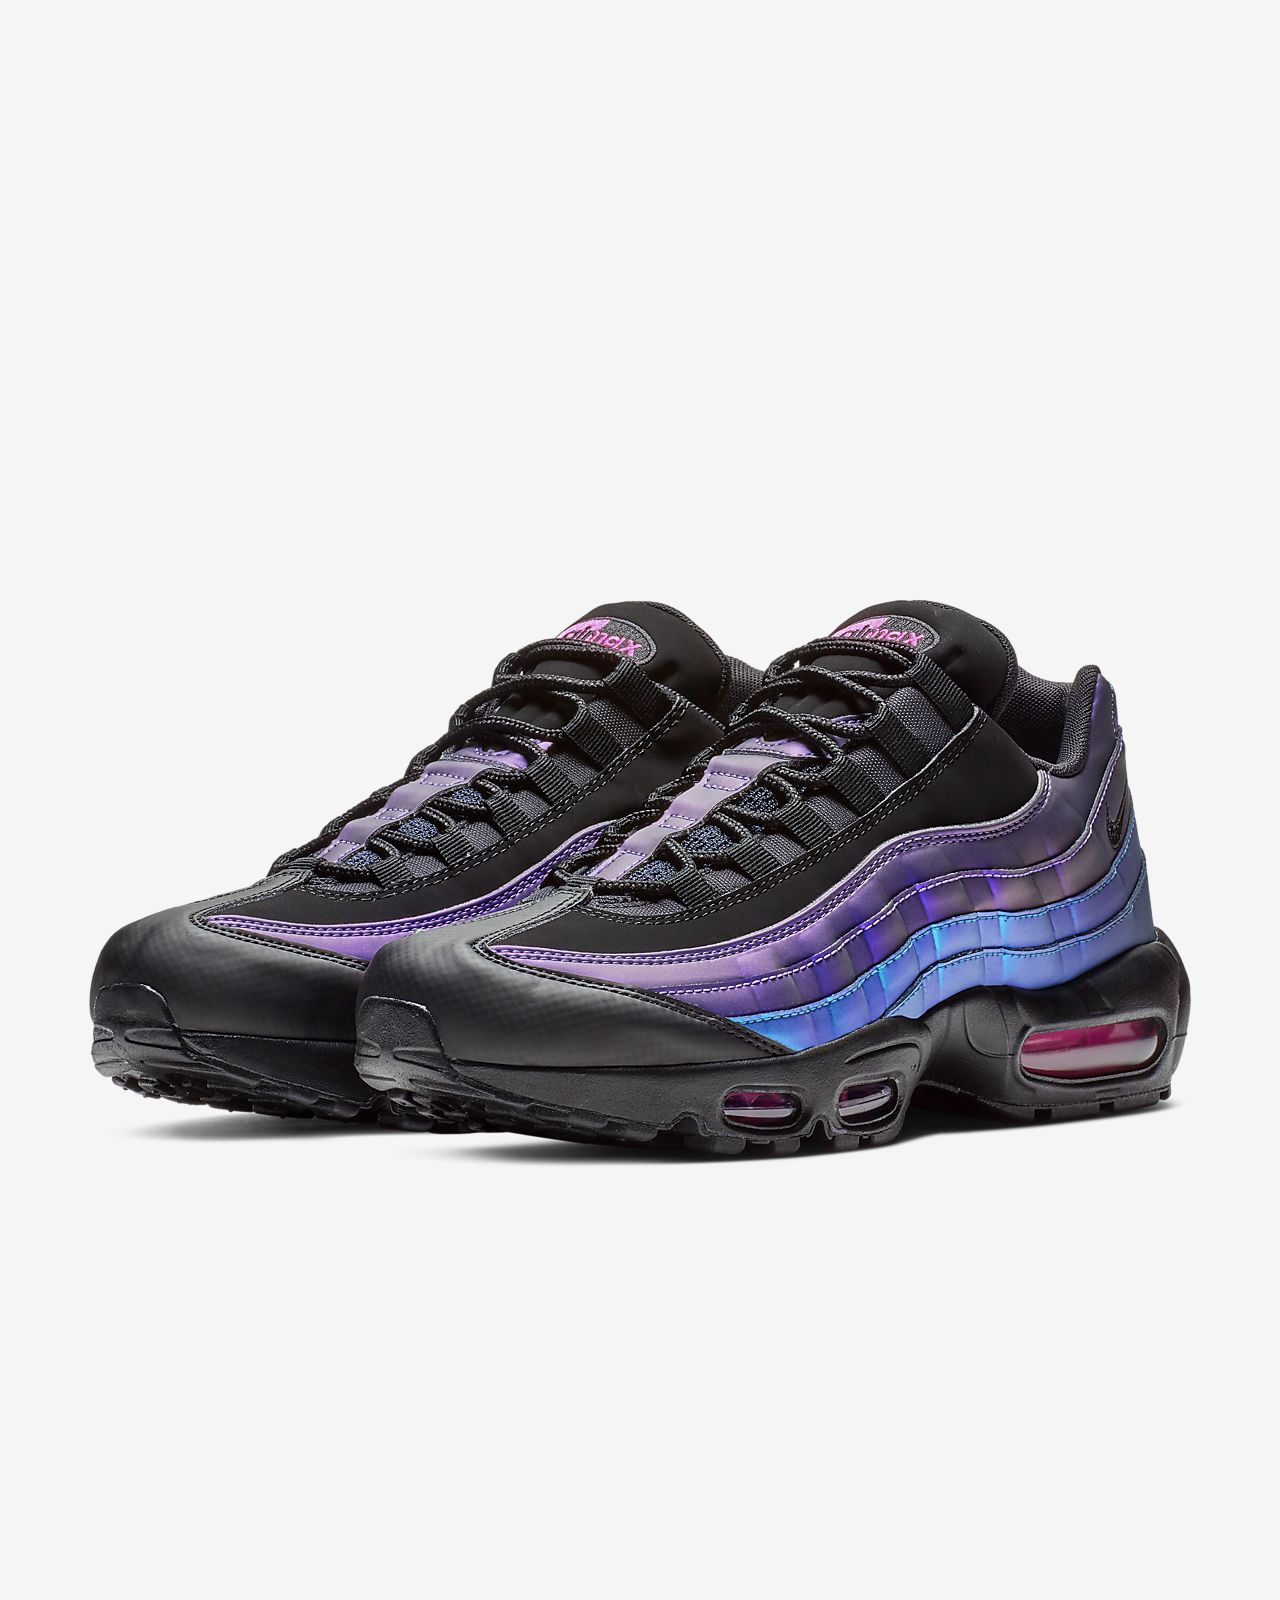 5725812f296 Nike Air Max 95 Premium Men s Shoe. Nike.com NO